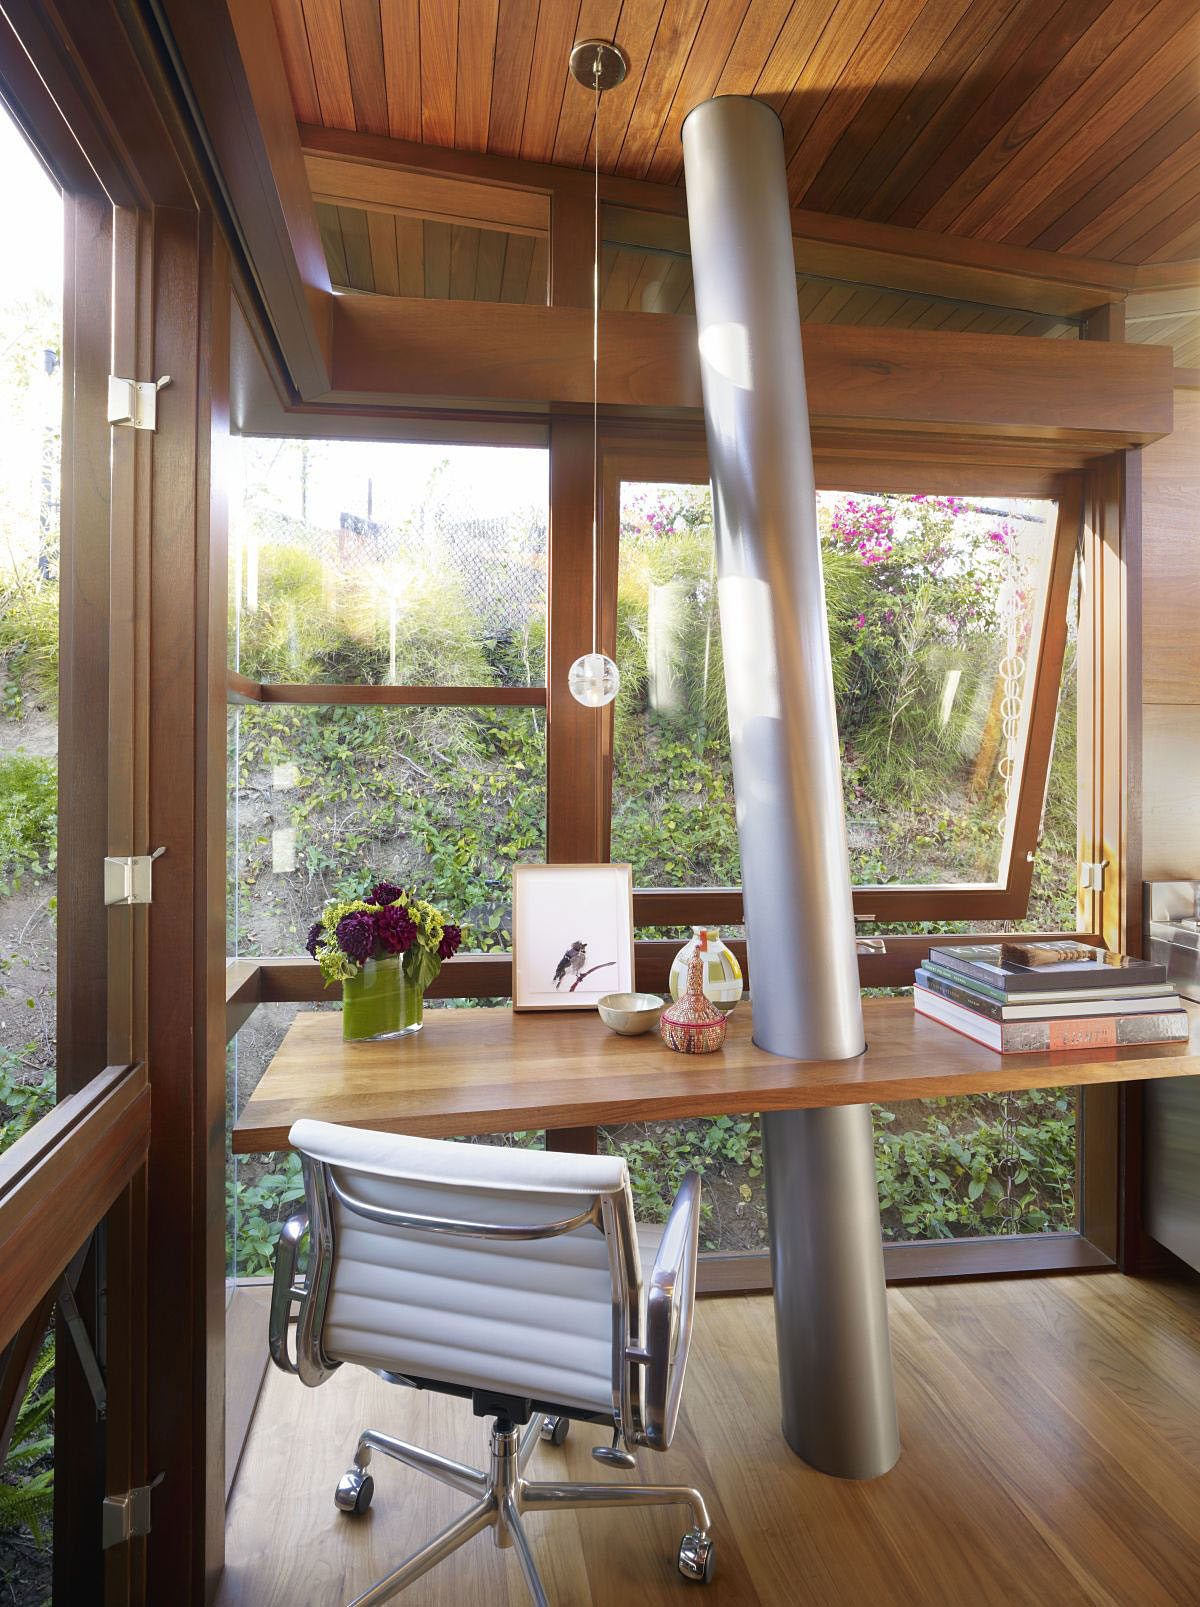 The Banyan Treehouse by Rockefeller Partners Architects (6)